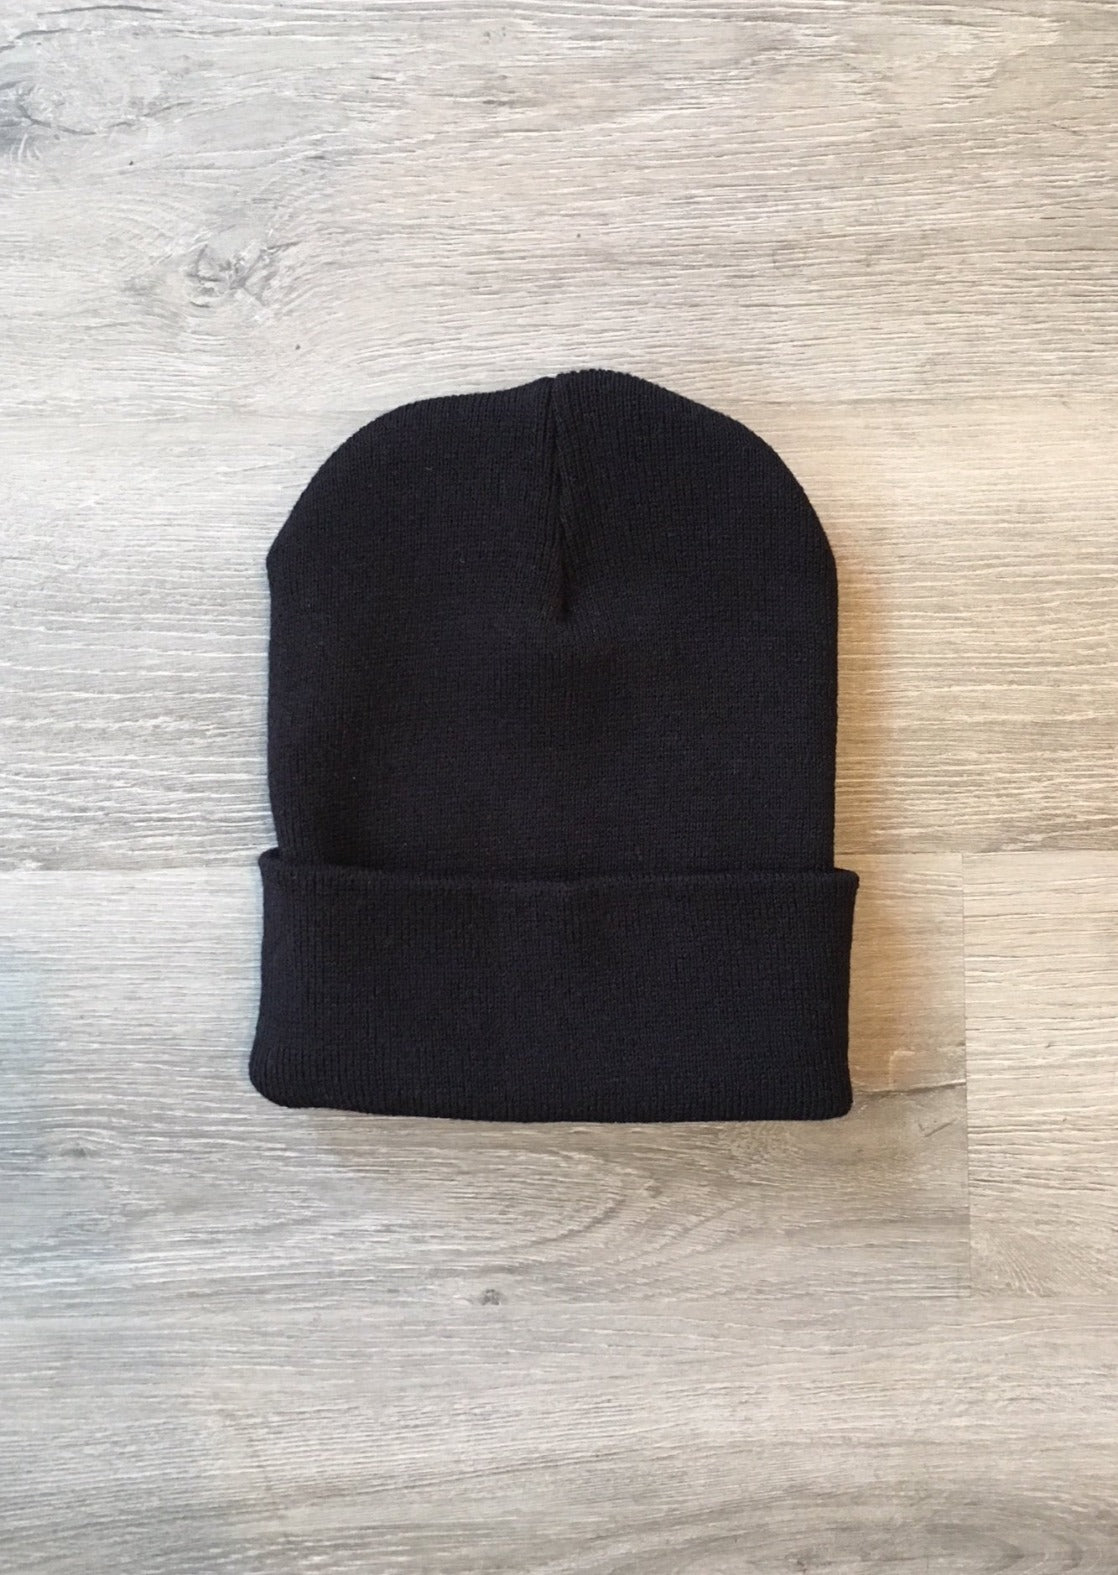 Made in USA Classic Cuffed Beanie Unisex Black